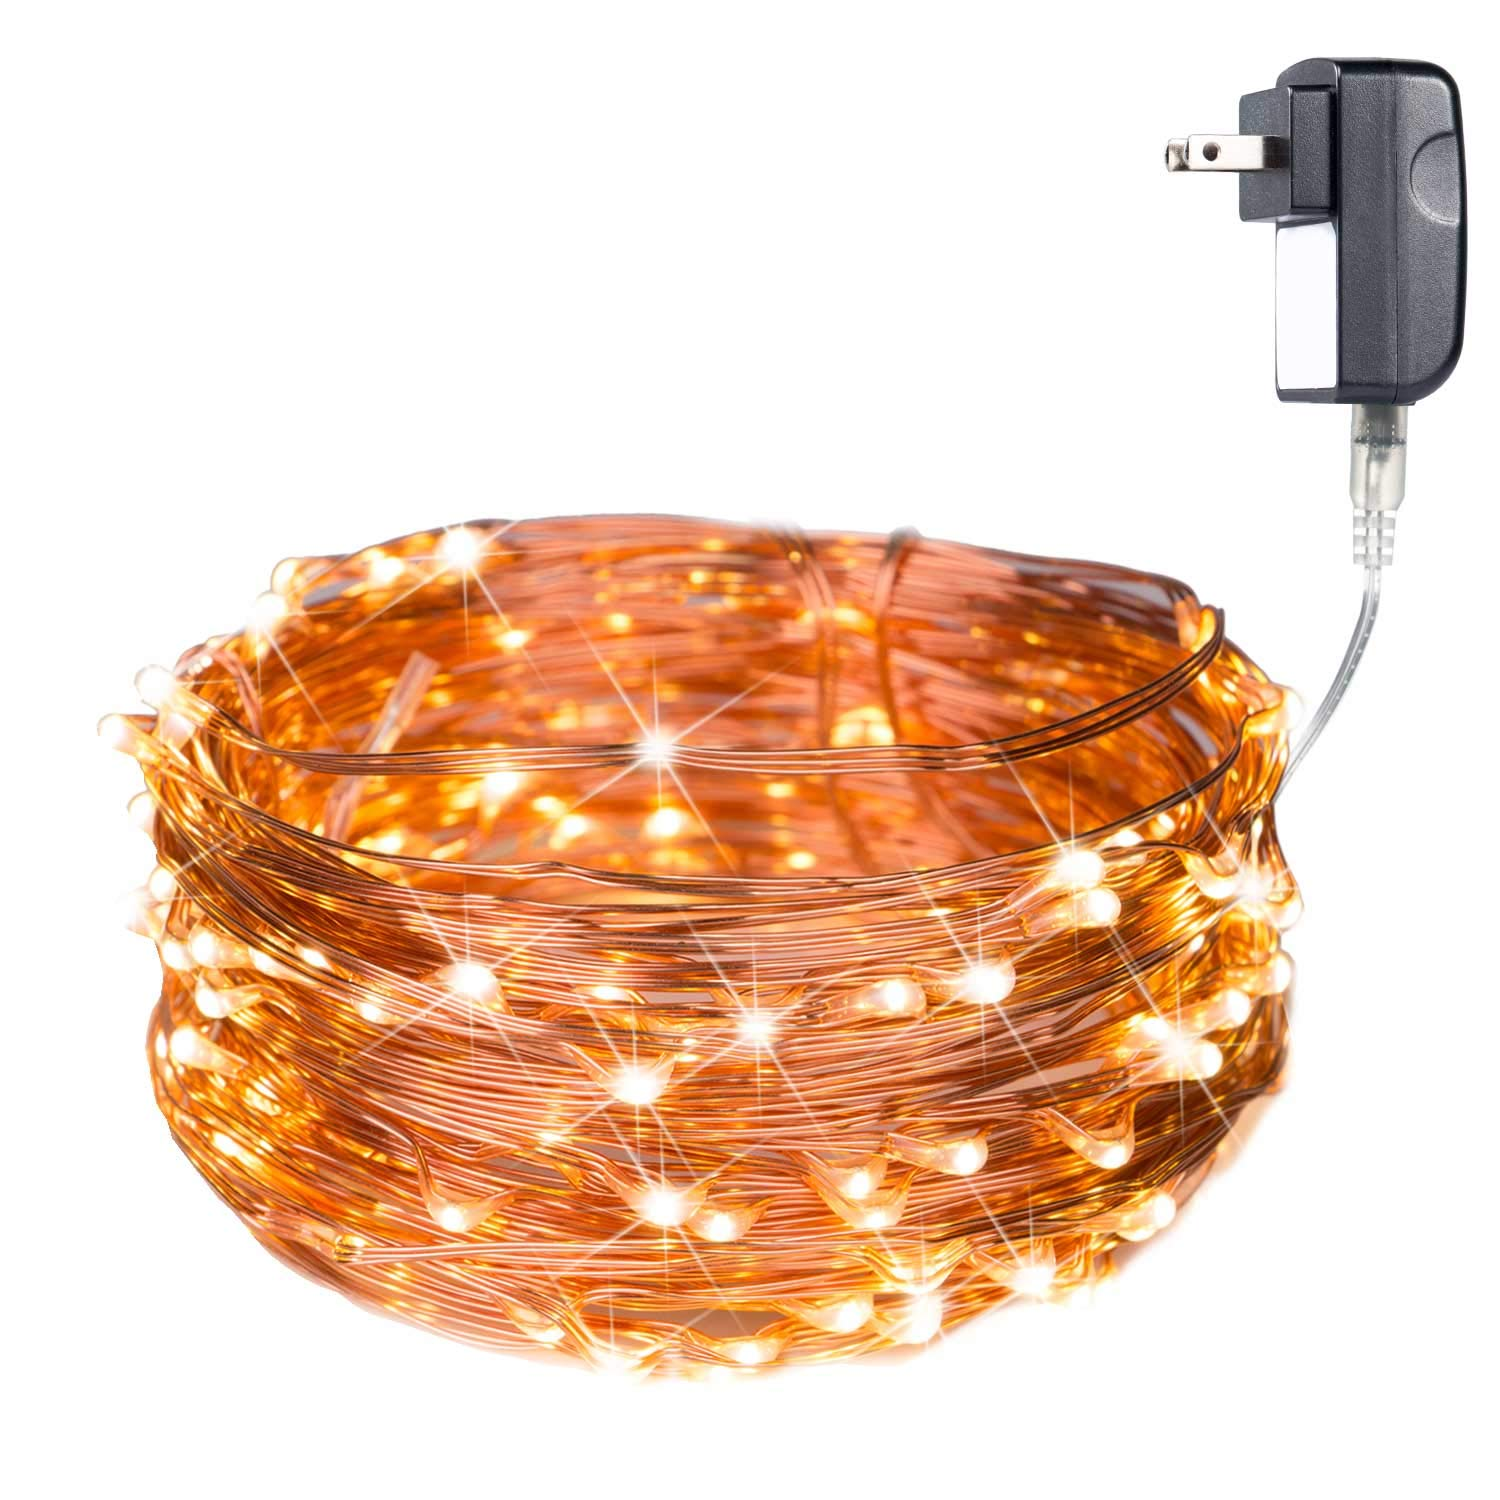 Details About 40 Feet Starry String Lights Warm White Color Led S On A Flexible Copper Wire